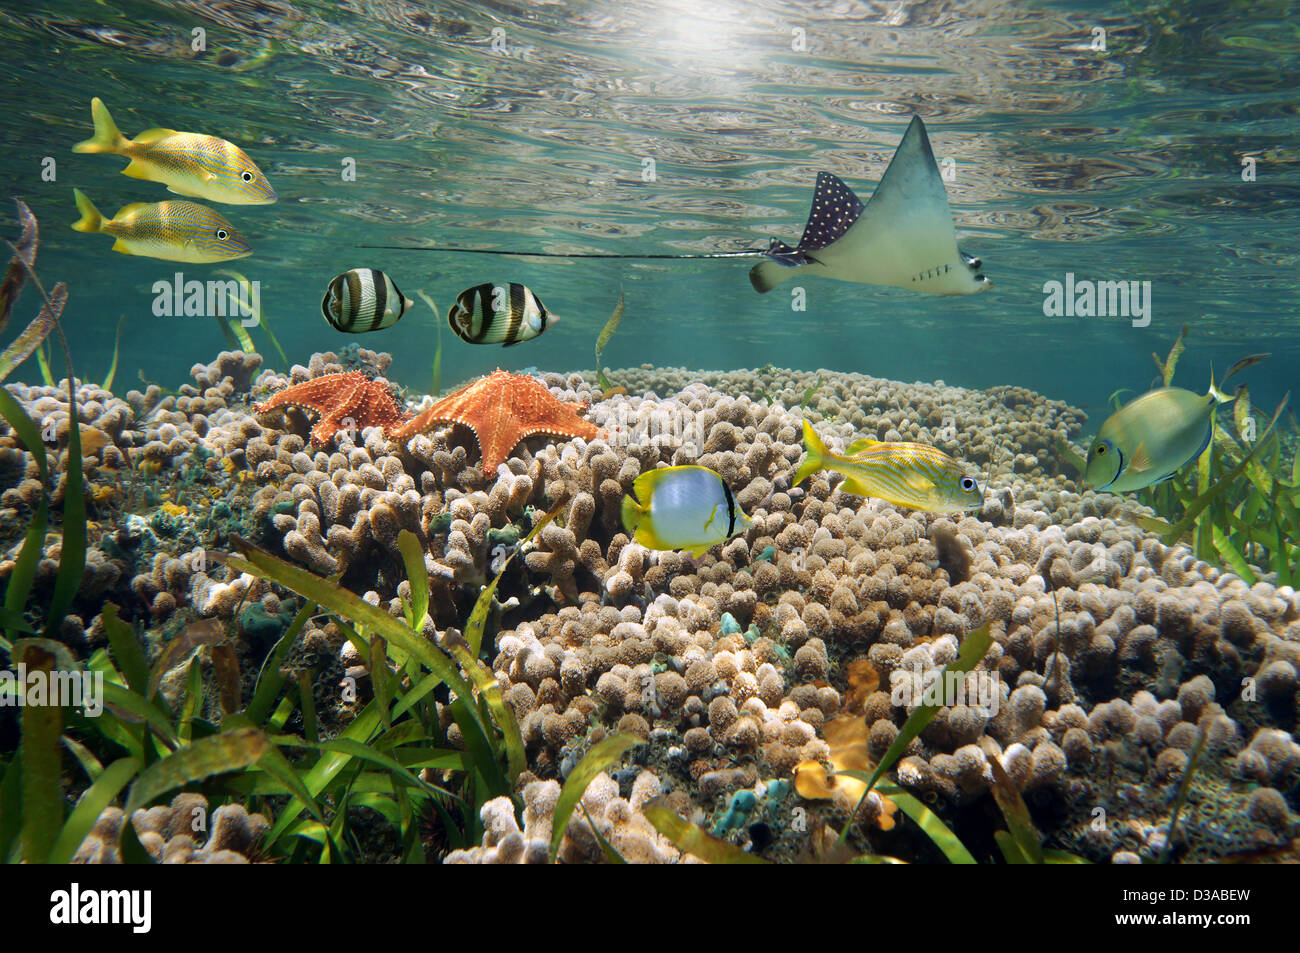 Underwater sea life in a shallow coral reef with tropical fish, starfish and an eagle ray, Caribbean sea - Stock Image